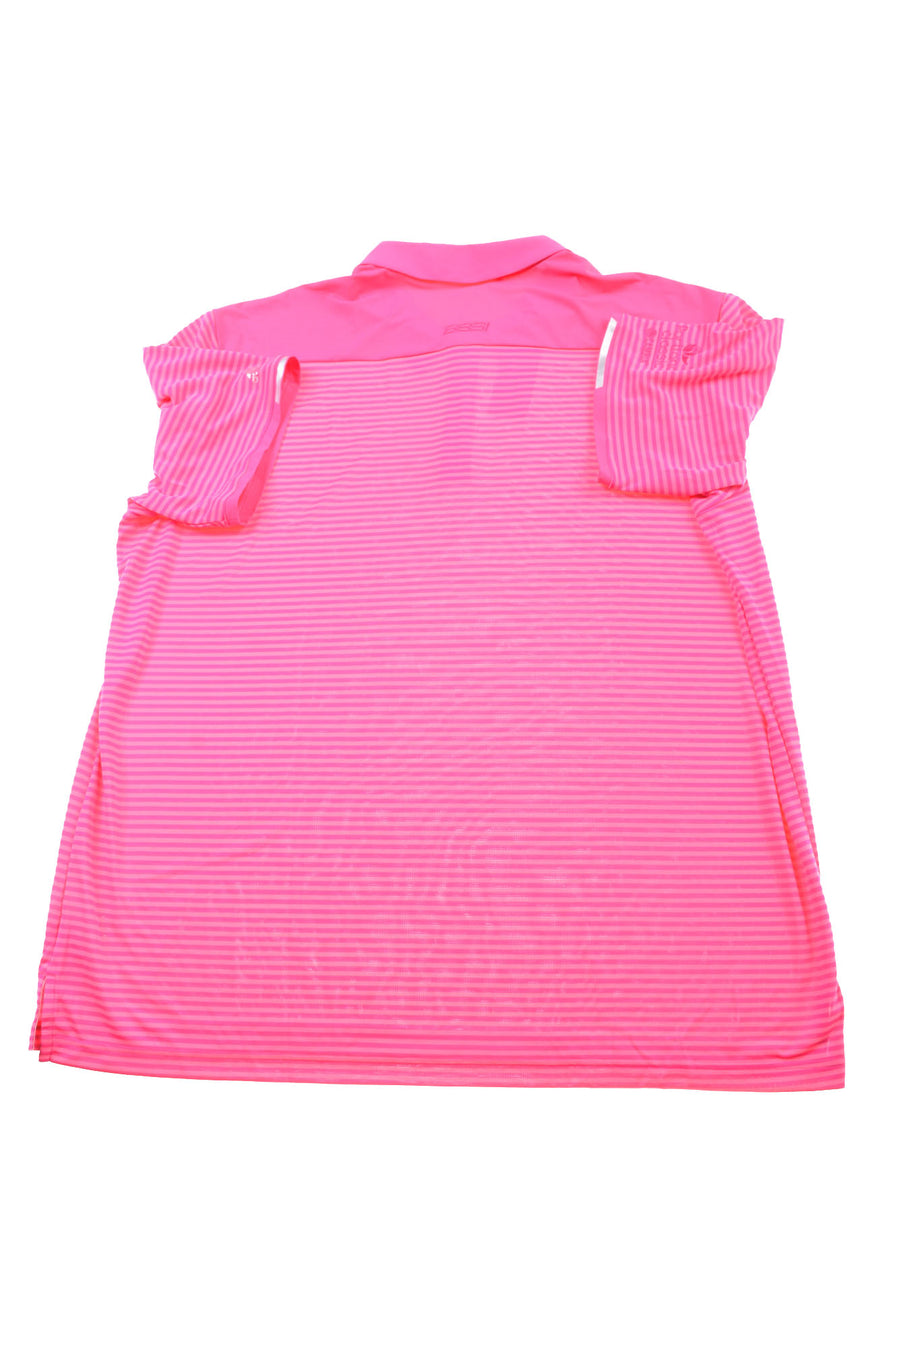 NEW Adidas Men's Plus Shirt  2X Pink